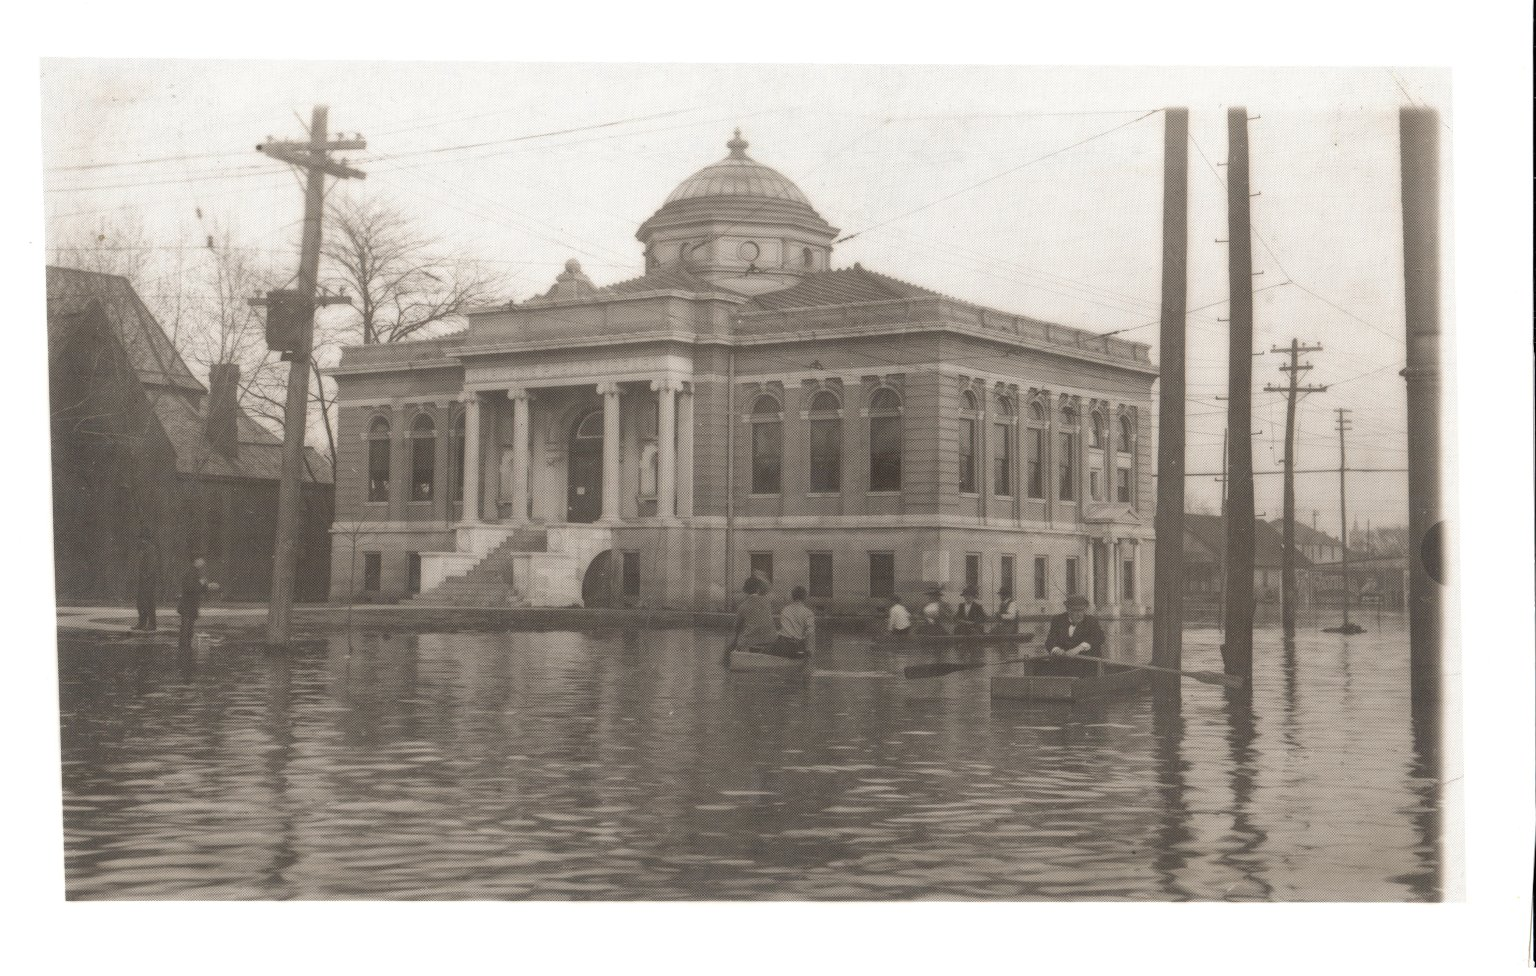 Carnegie Library and the 1913 Flood